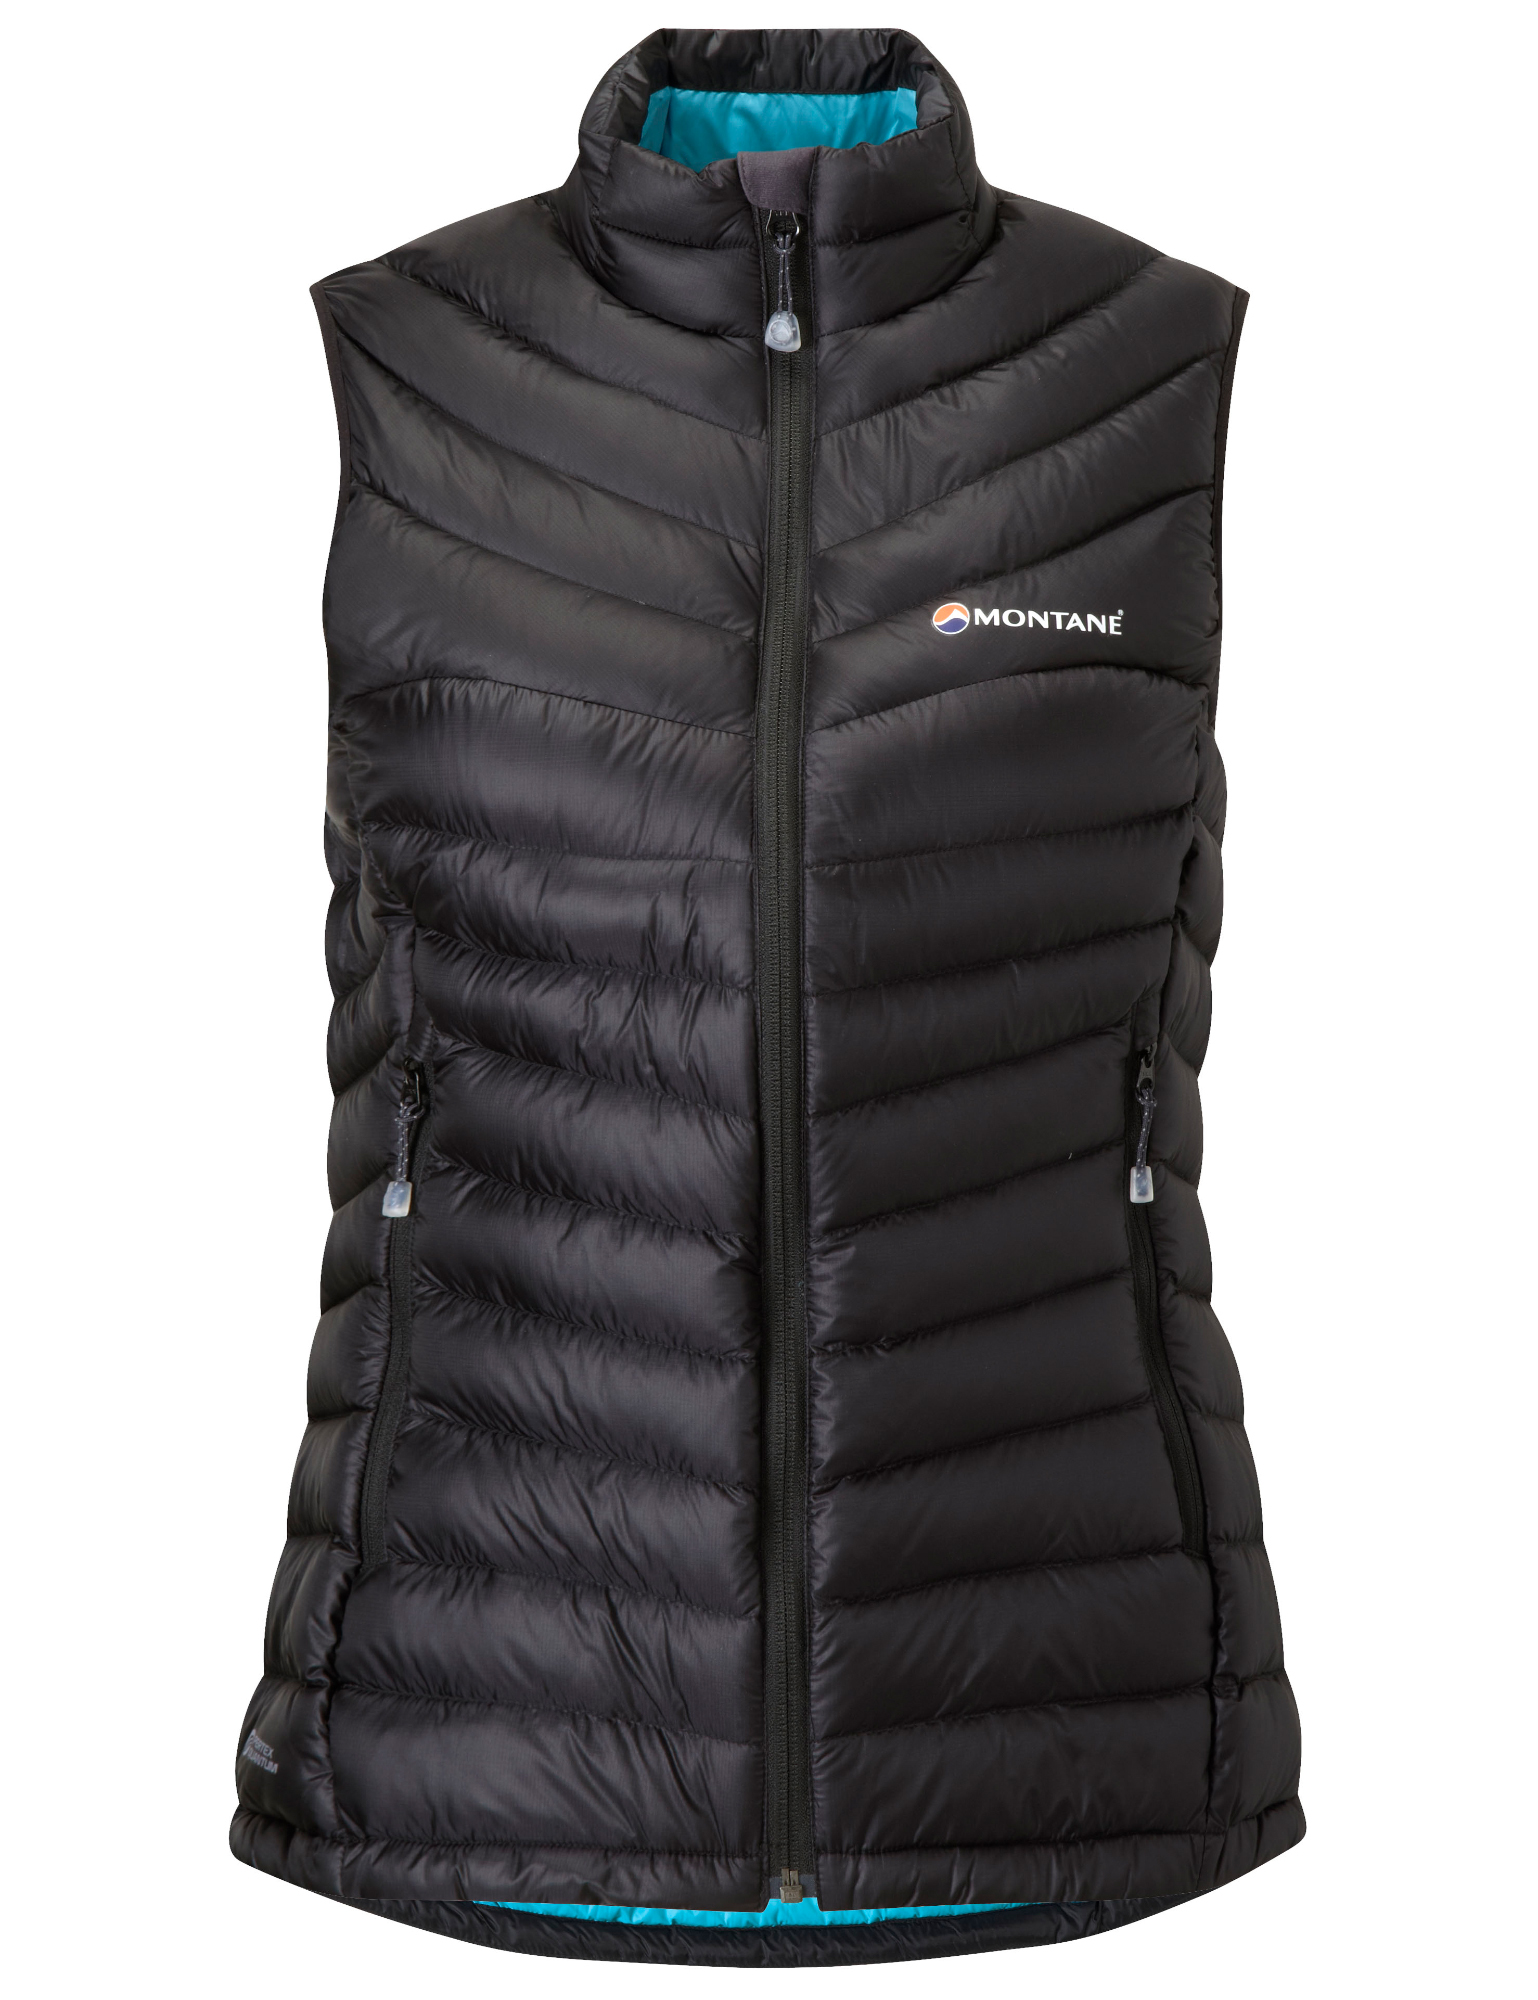 Montane Womens Featherlite Down Vest - Dunvest - Dame - Sort | Vests